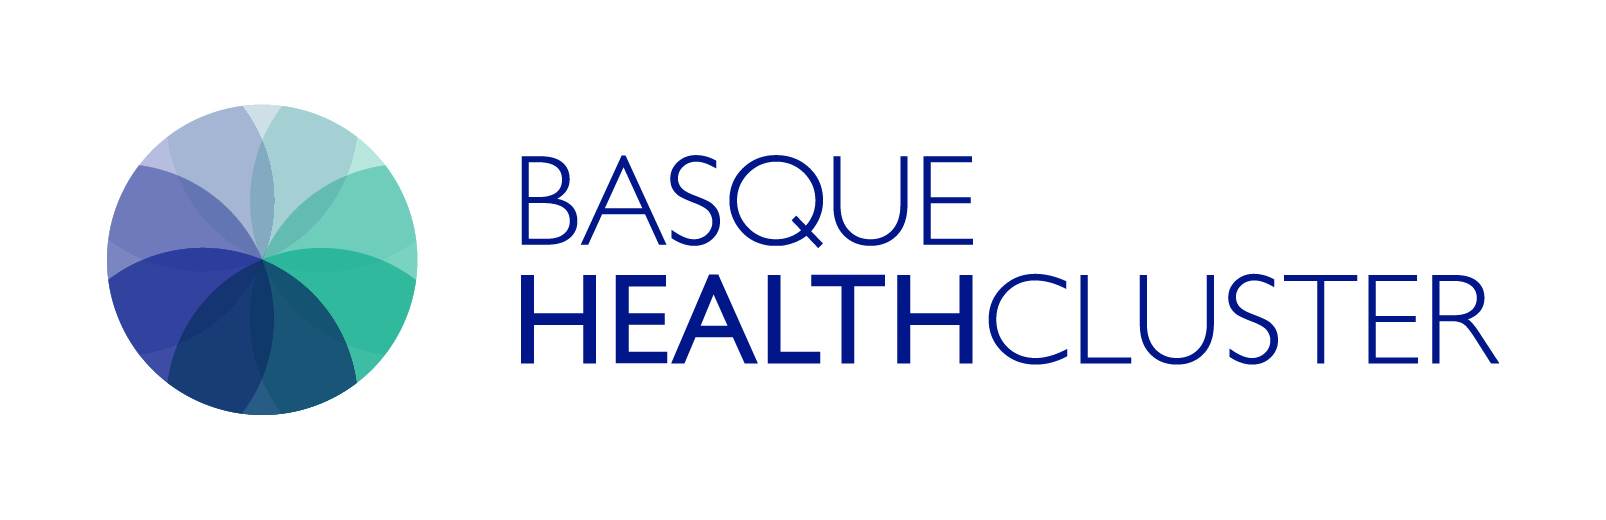 Basque Health Cluster_logo.jpg